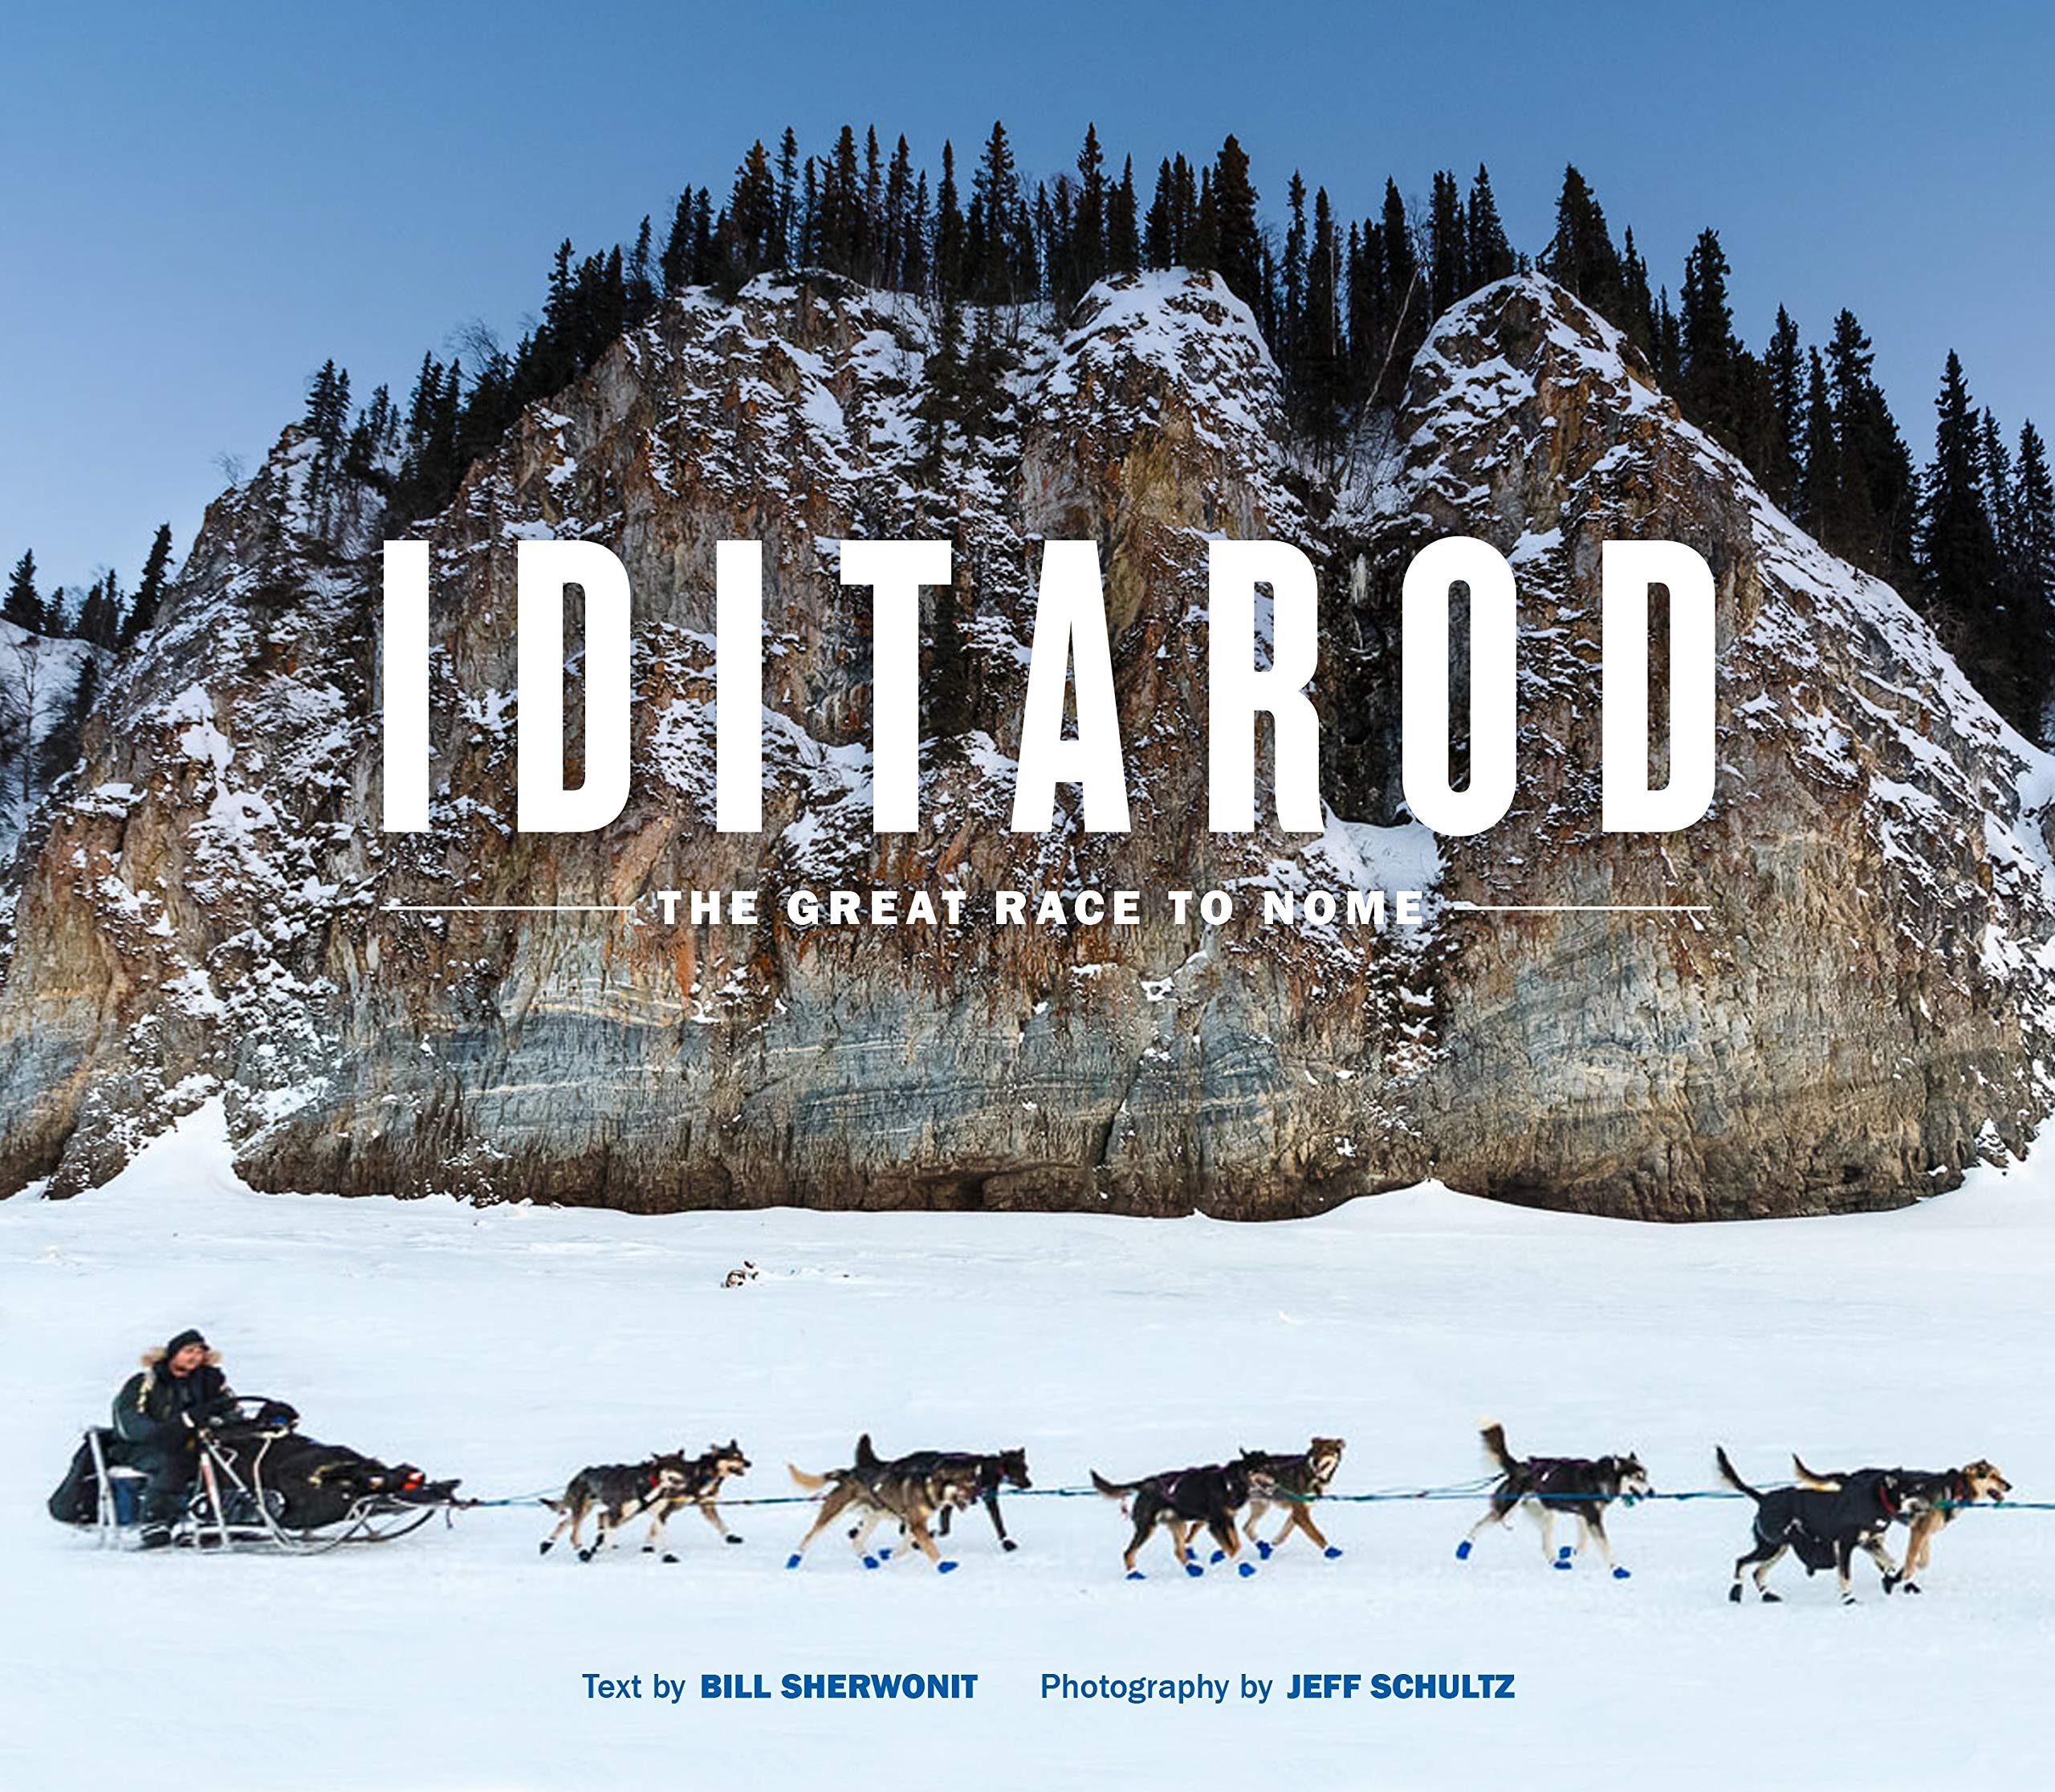 Image OfIditarod: The Great Race To Nome